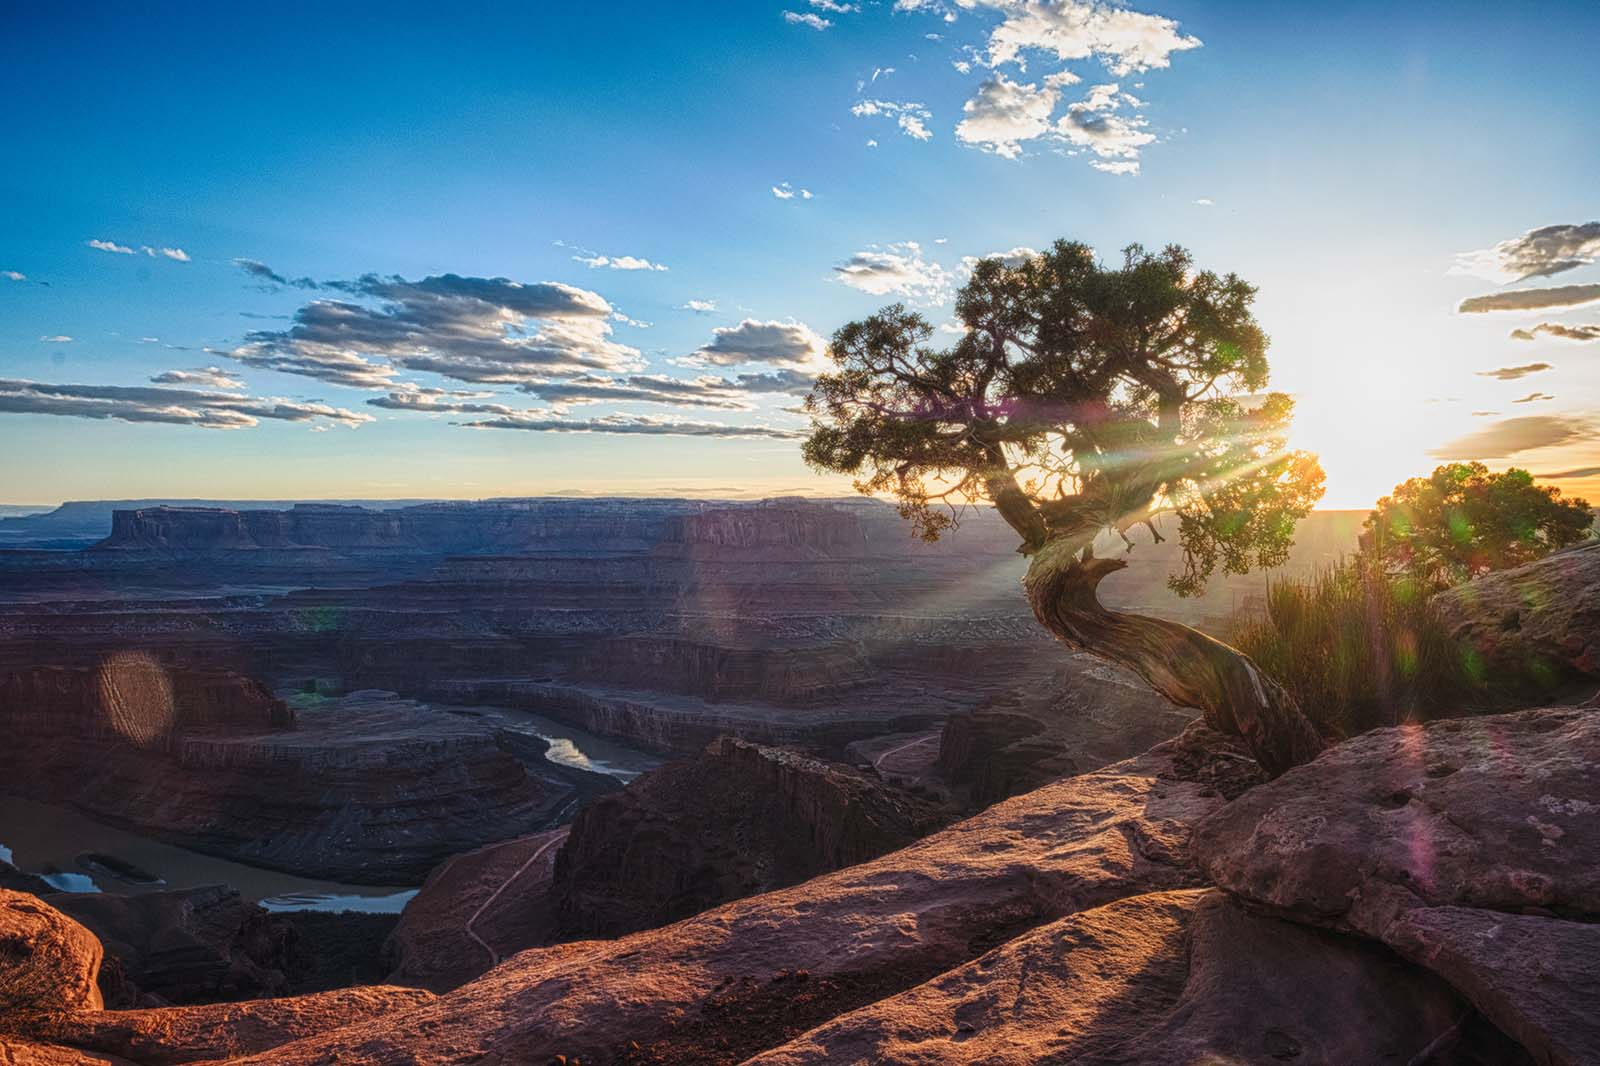 Travel photography gear used by Erica Everhart to create this landscape photo